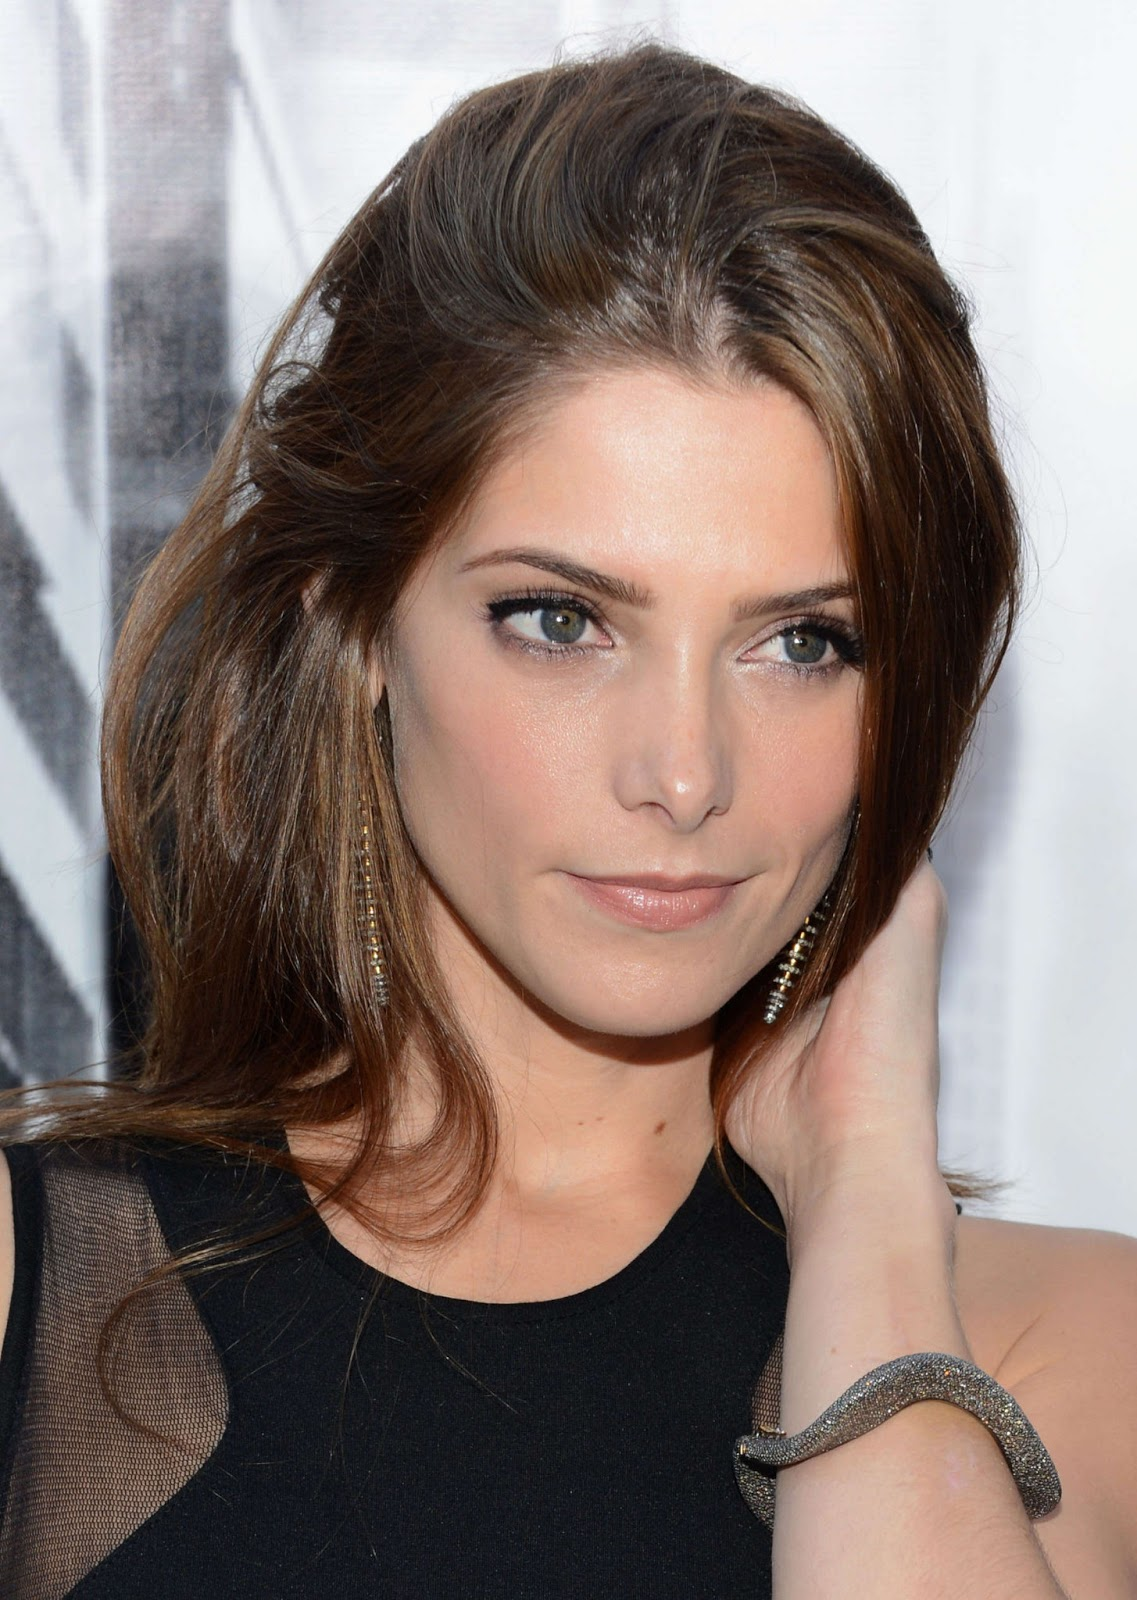 Ashley Greene Was Born On February 21, 1987 In Jacksonville Alice